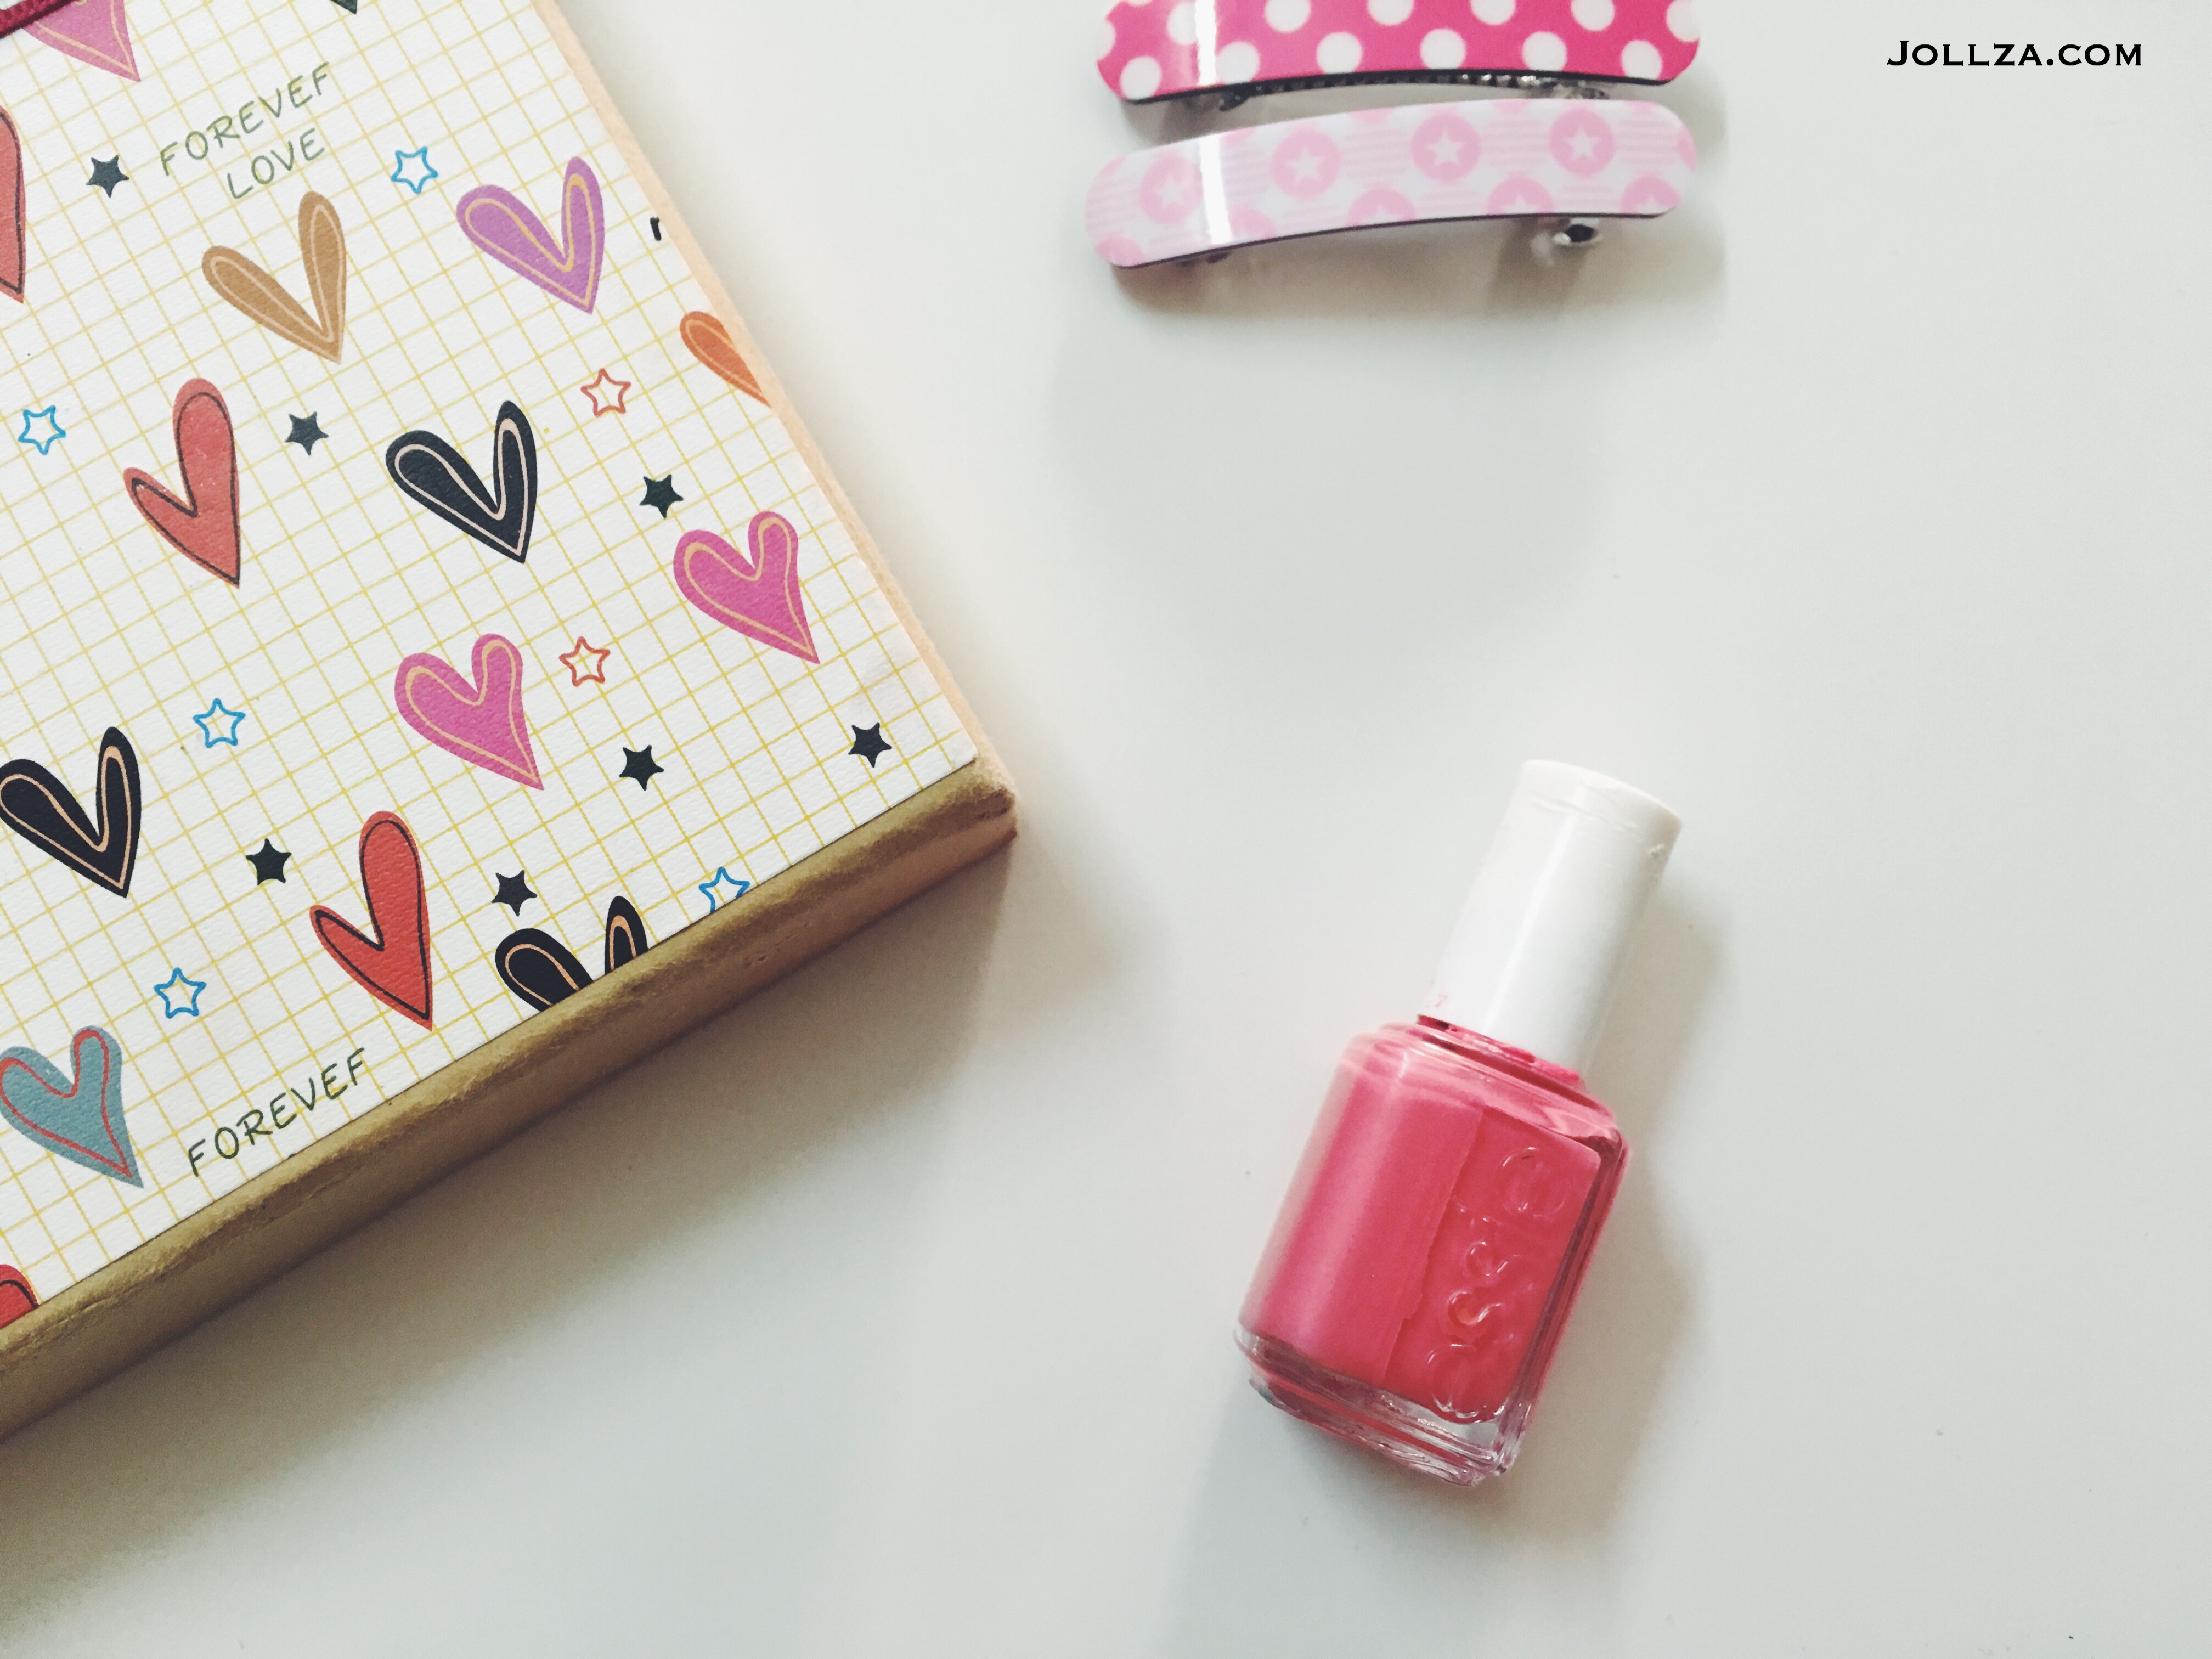 cute as a button Nail Polish Essie